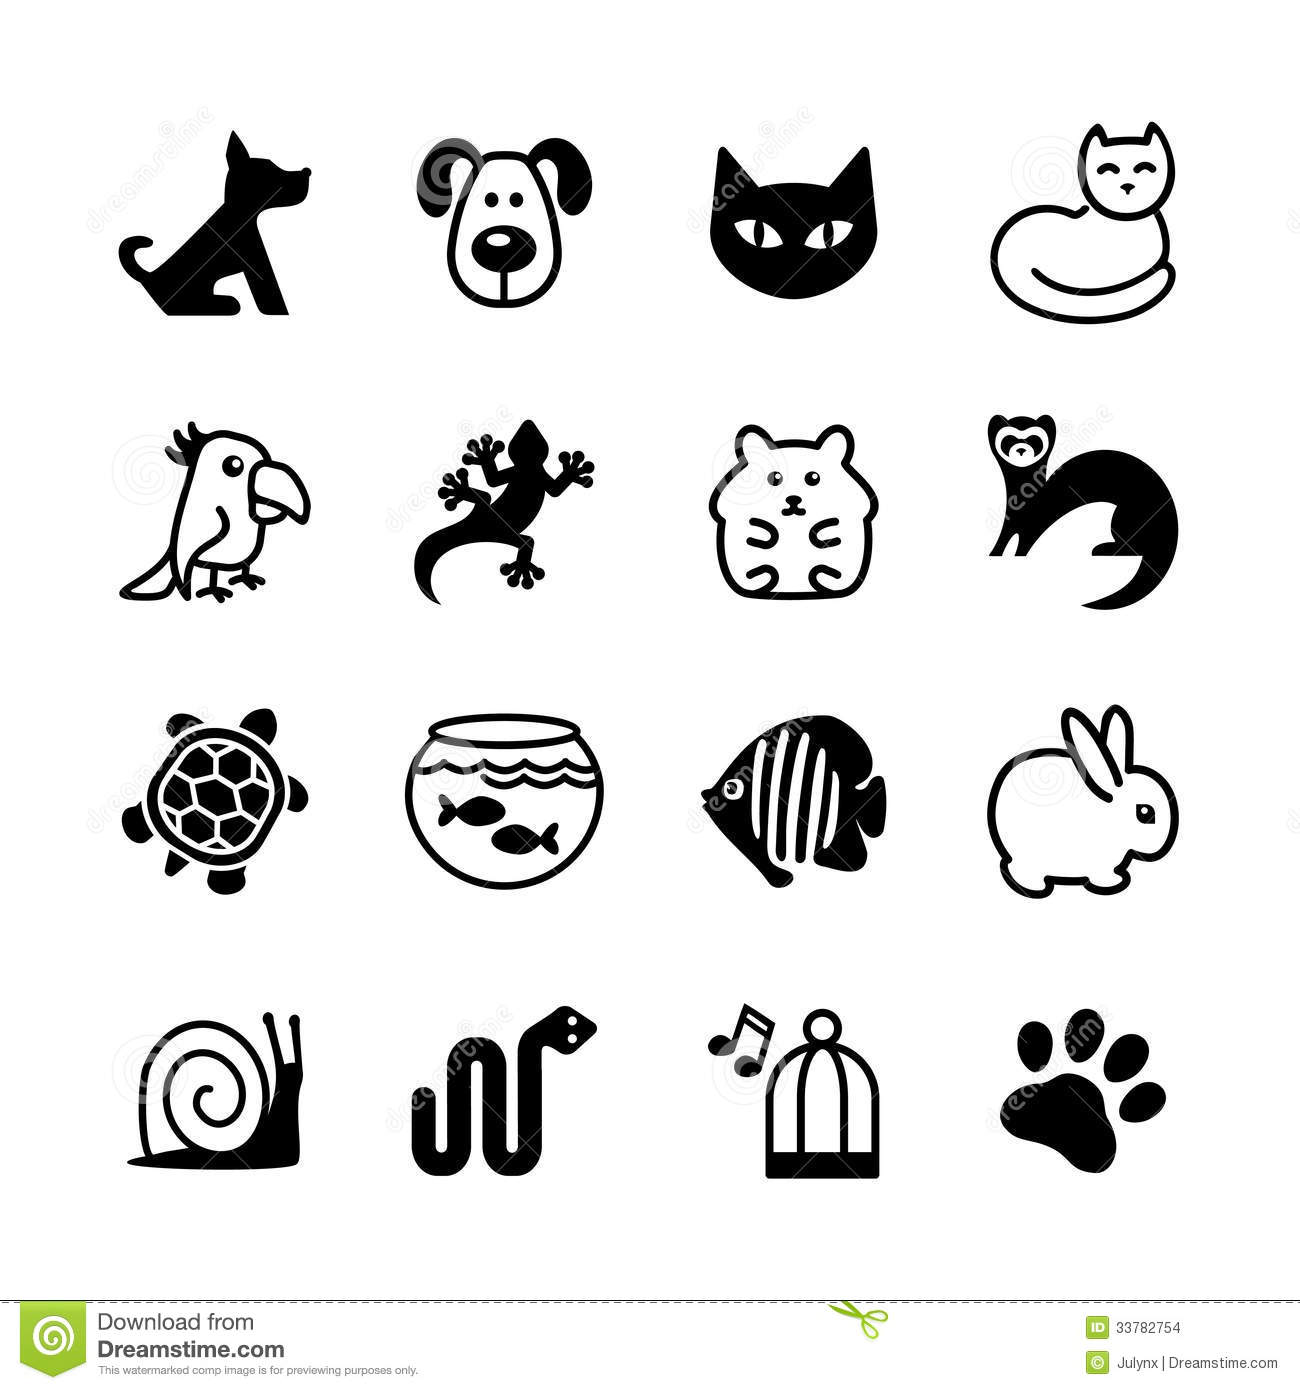 Download Web Icon Set. Pet Shop, Types Of Pets. Stock Vector - Illustration of print, icon: 33782754